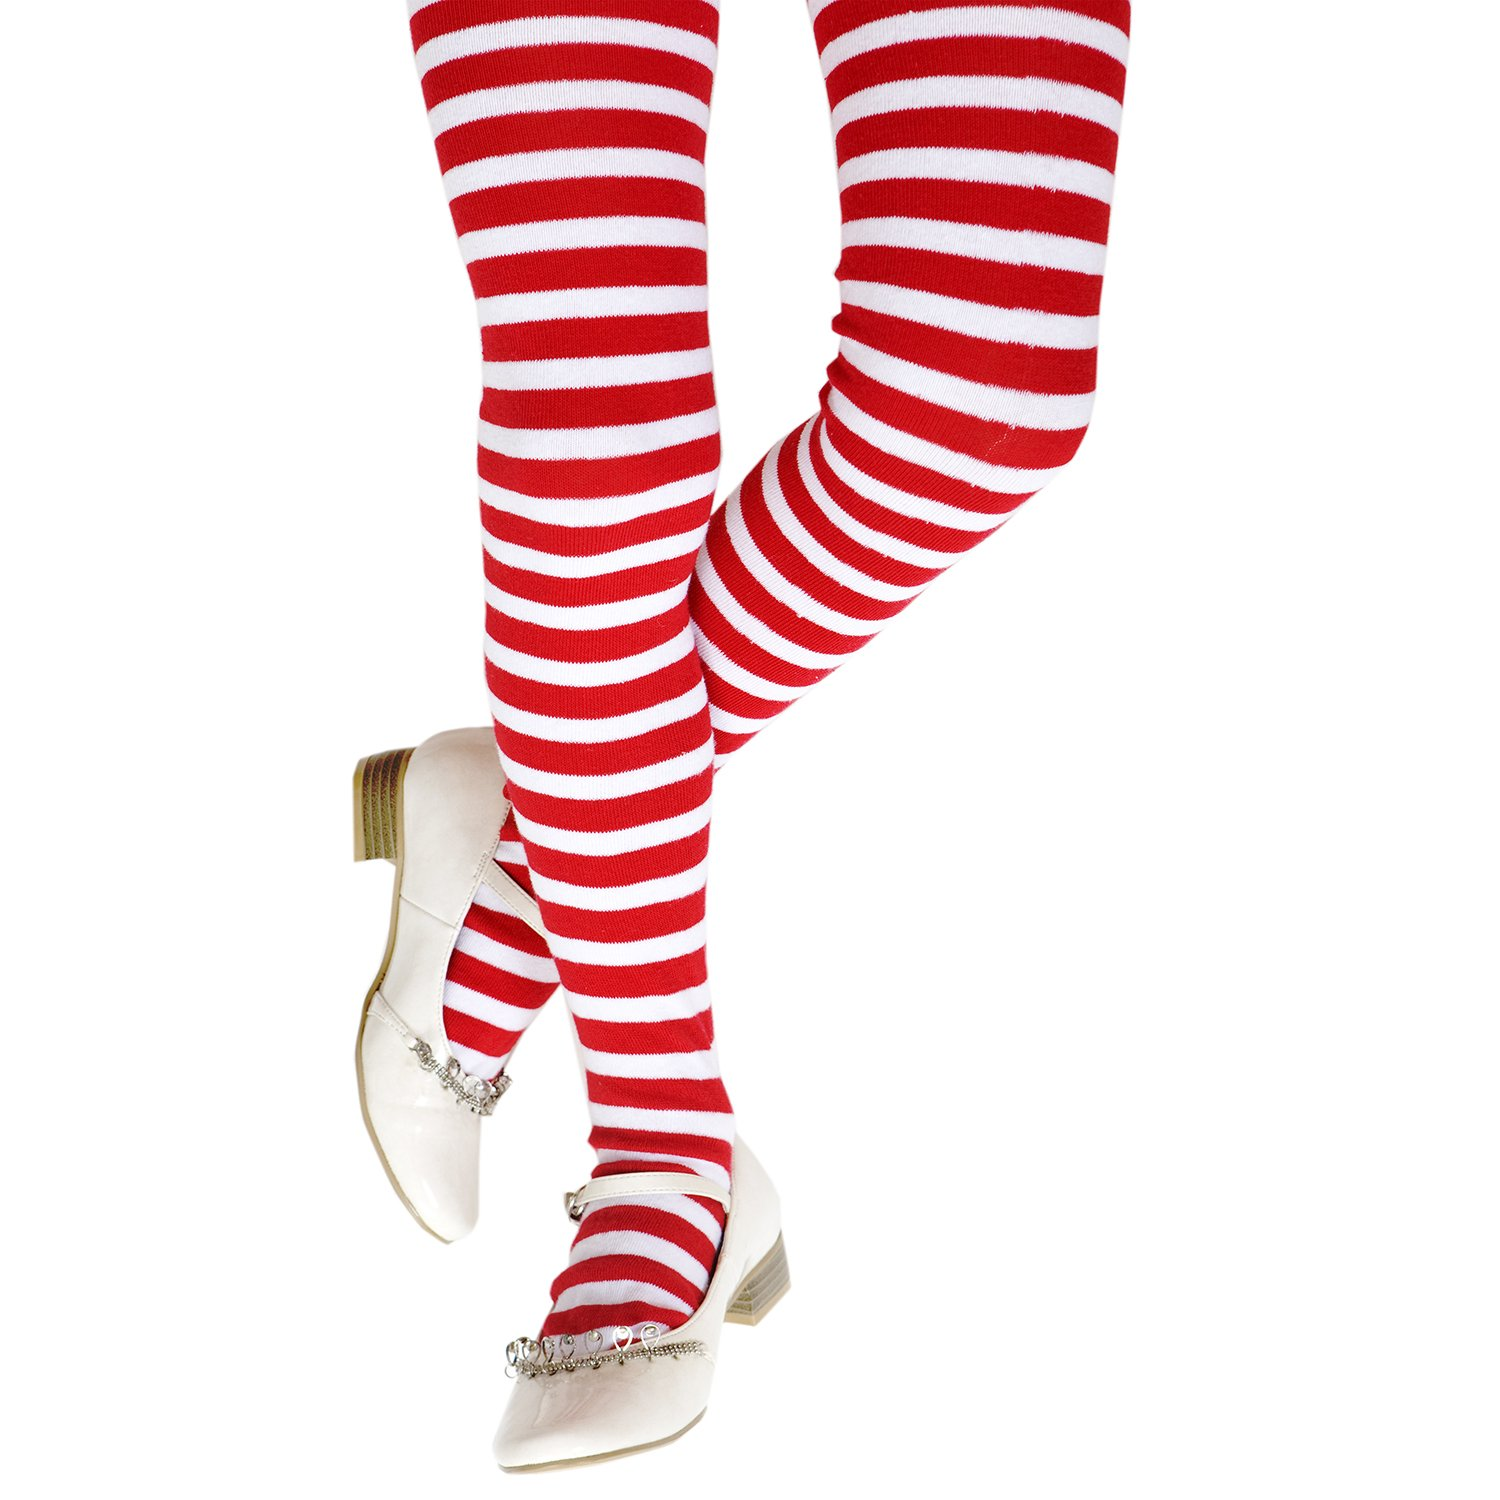 Funny Party Hats Funny Thigh High Socks - Costume Tights - Costume Accessories